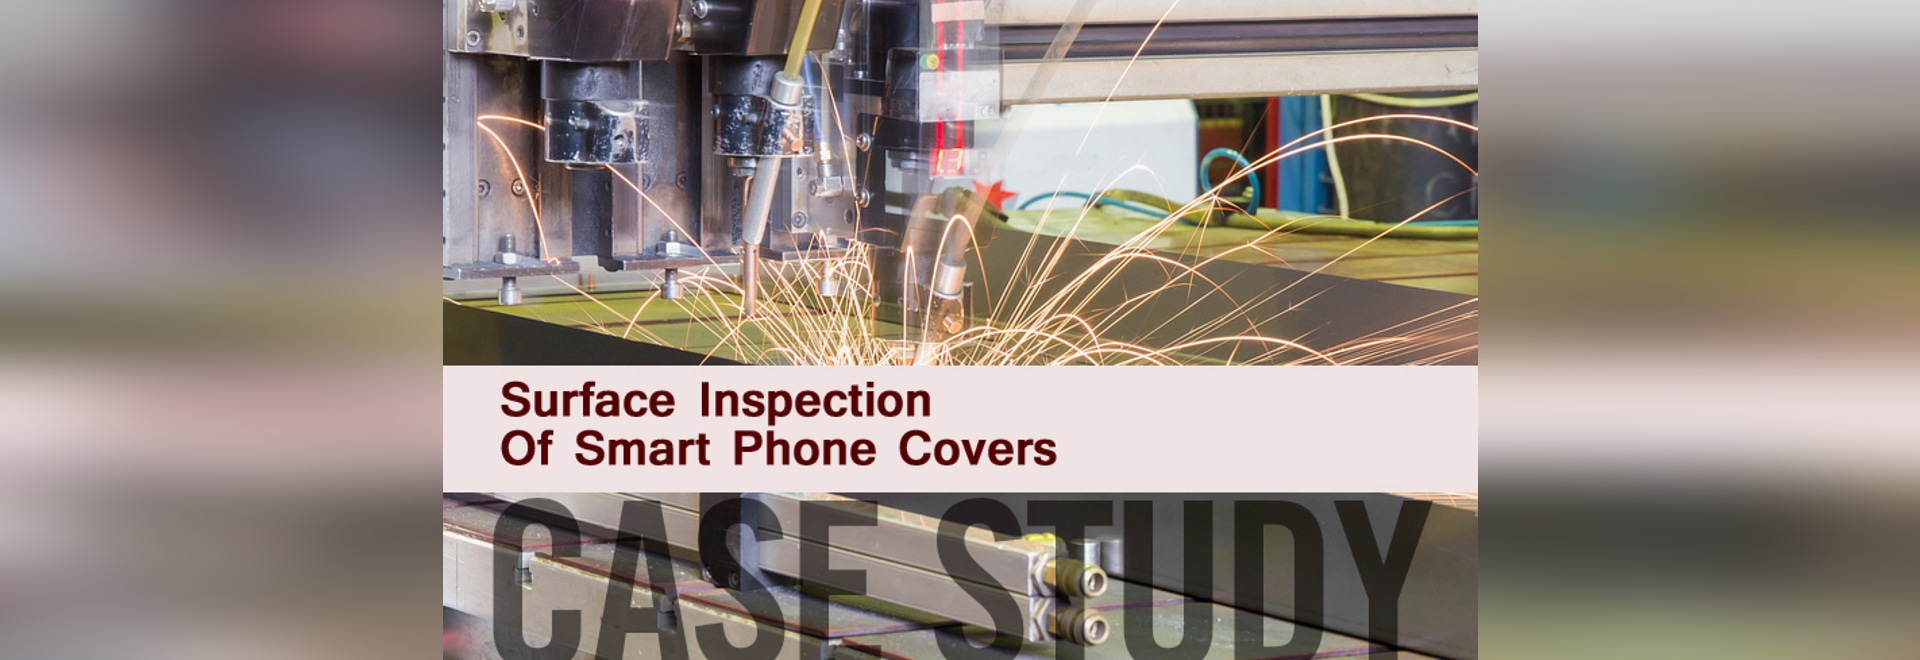 Case Study surface inspection smart phone covers